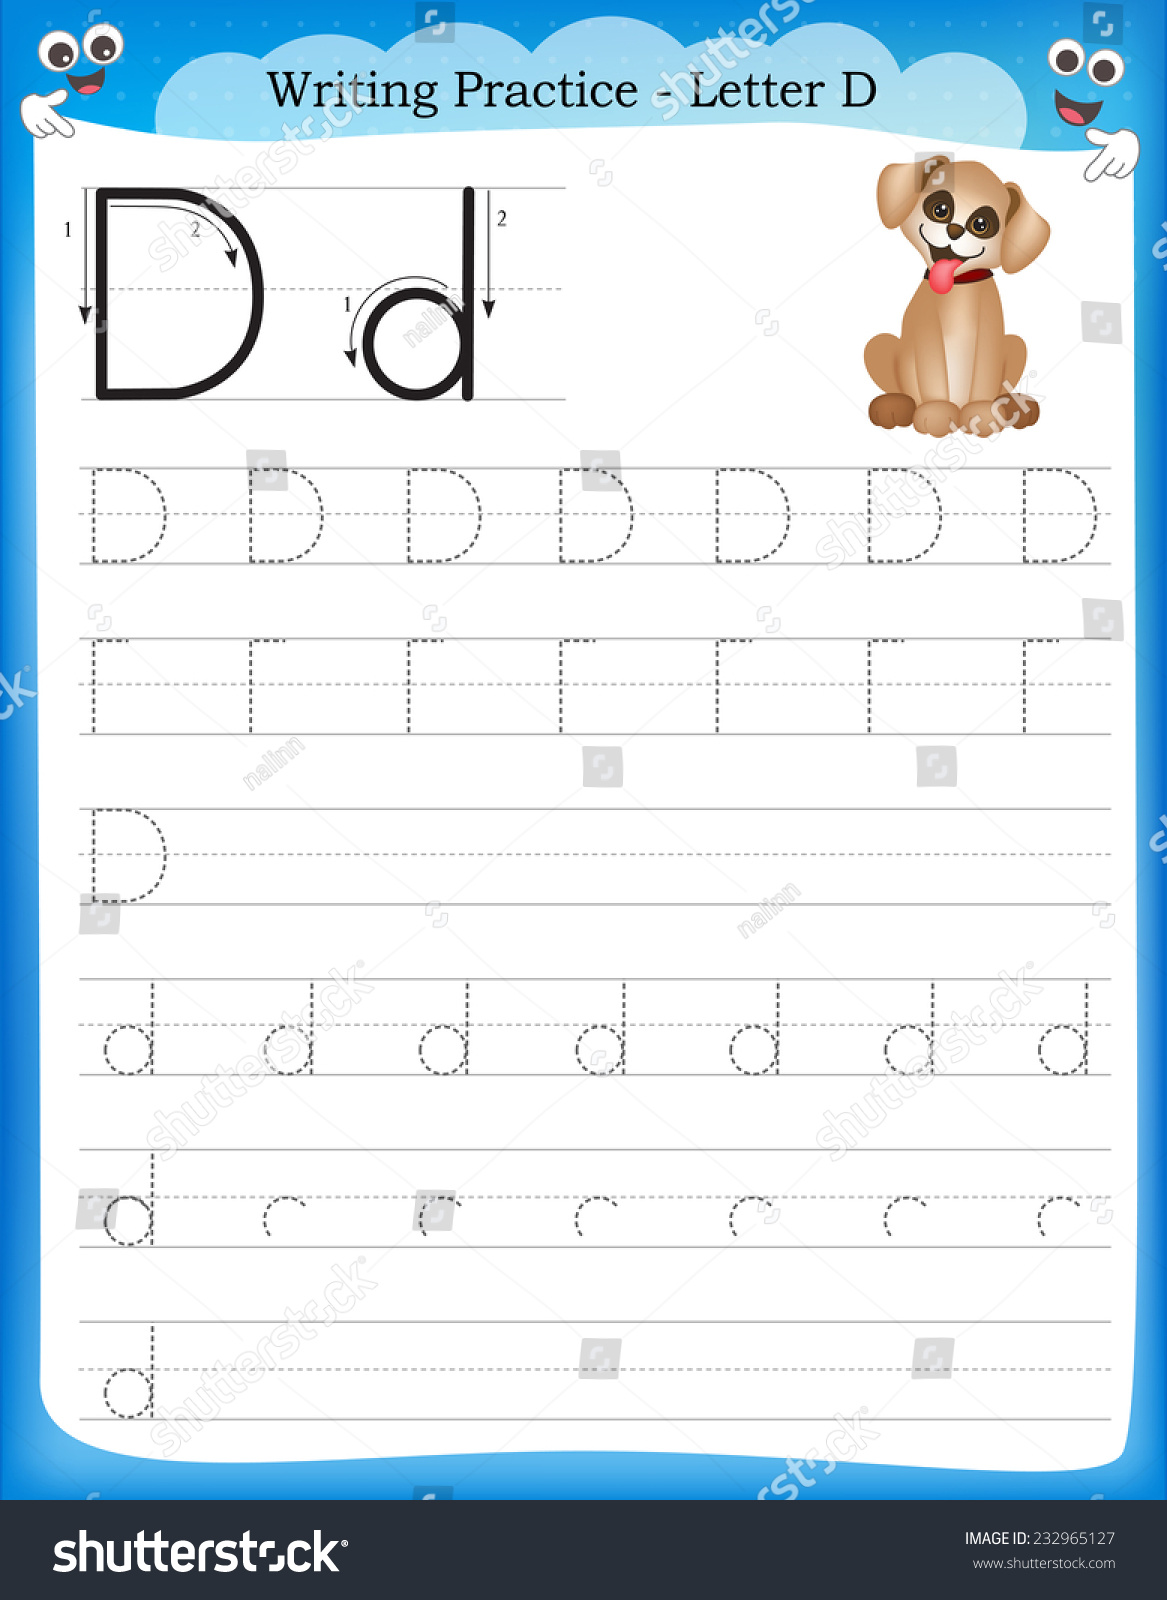 Writing Practice Letter D Printable Worksheet For Preschool Kindergarten Kids To Improve Basic